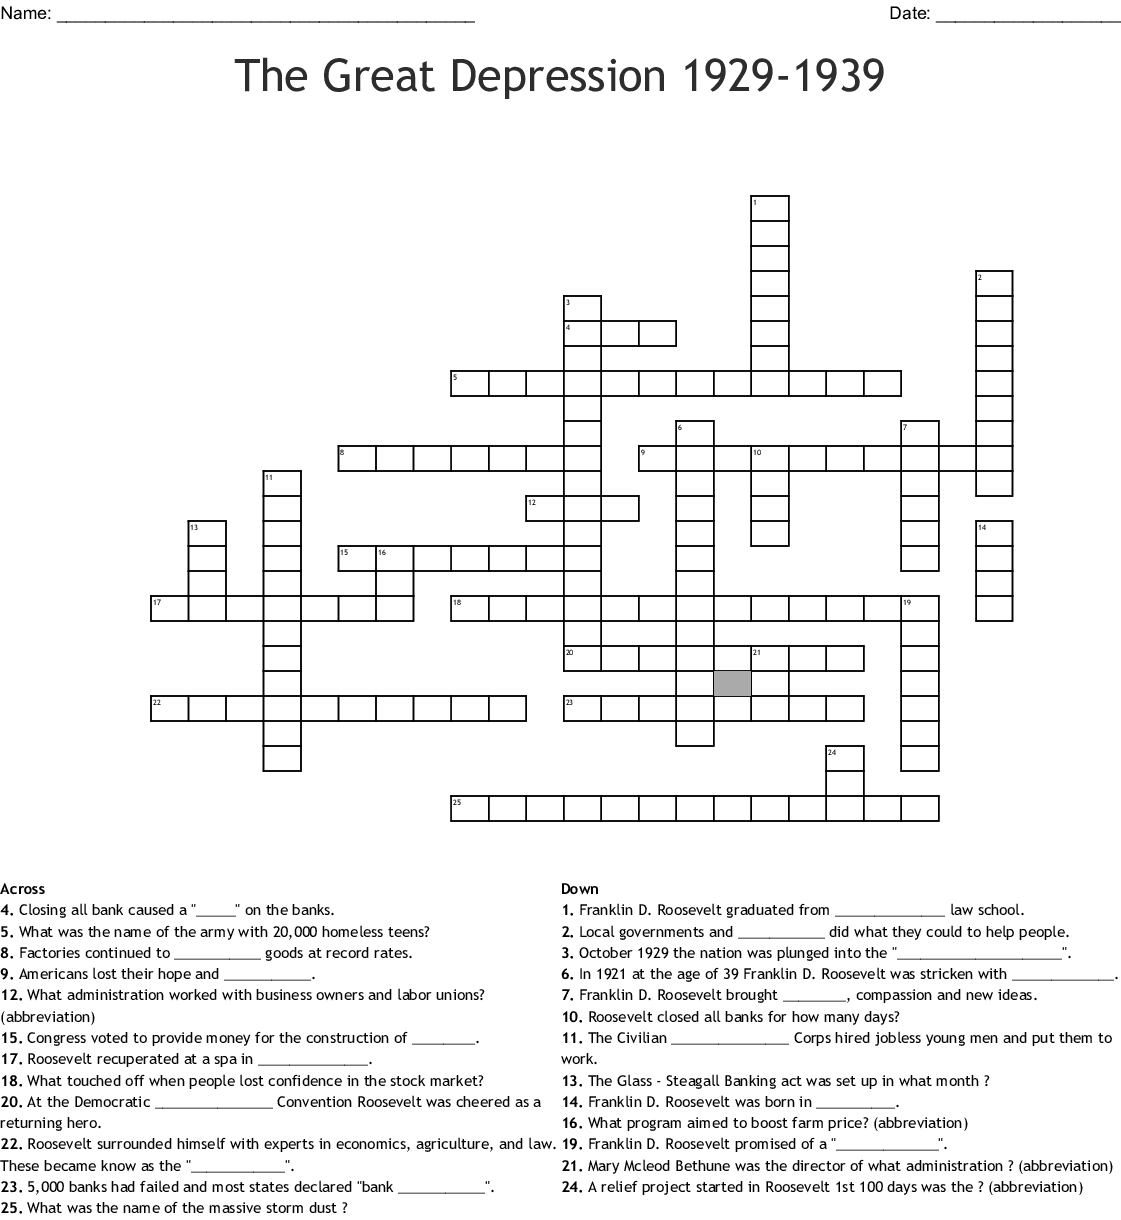 The Great Depression Crossword Word